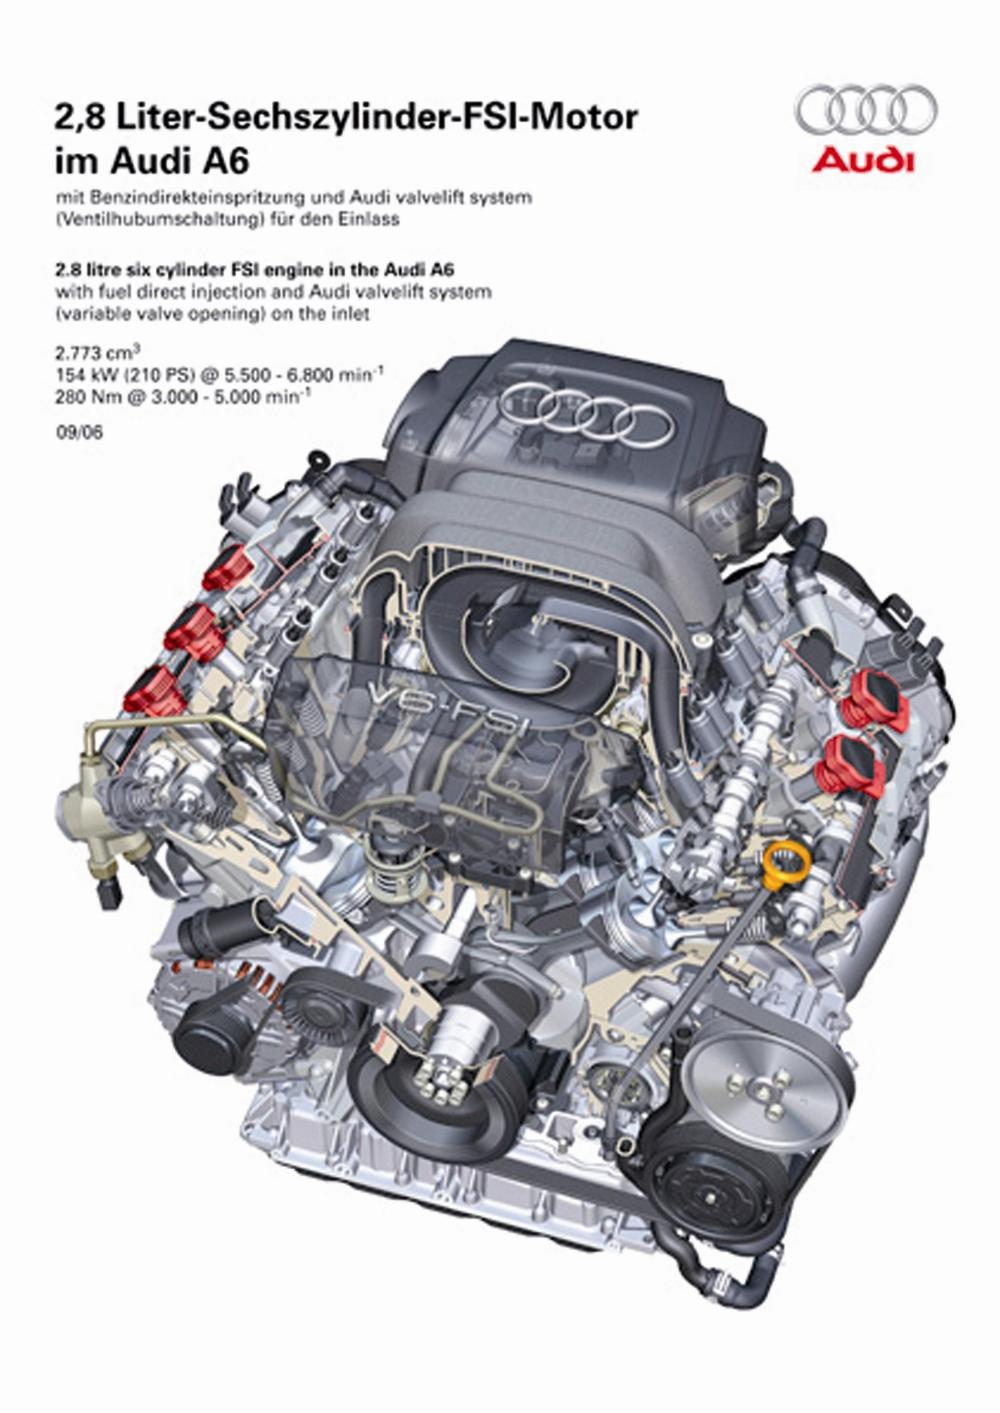 medium resolution of 2005 a6 4 2 engine diagram wiring diagram week 2000 audi a6 v8 engine diagram